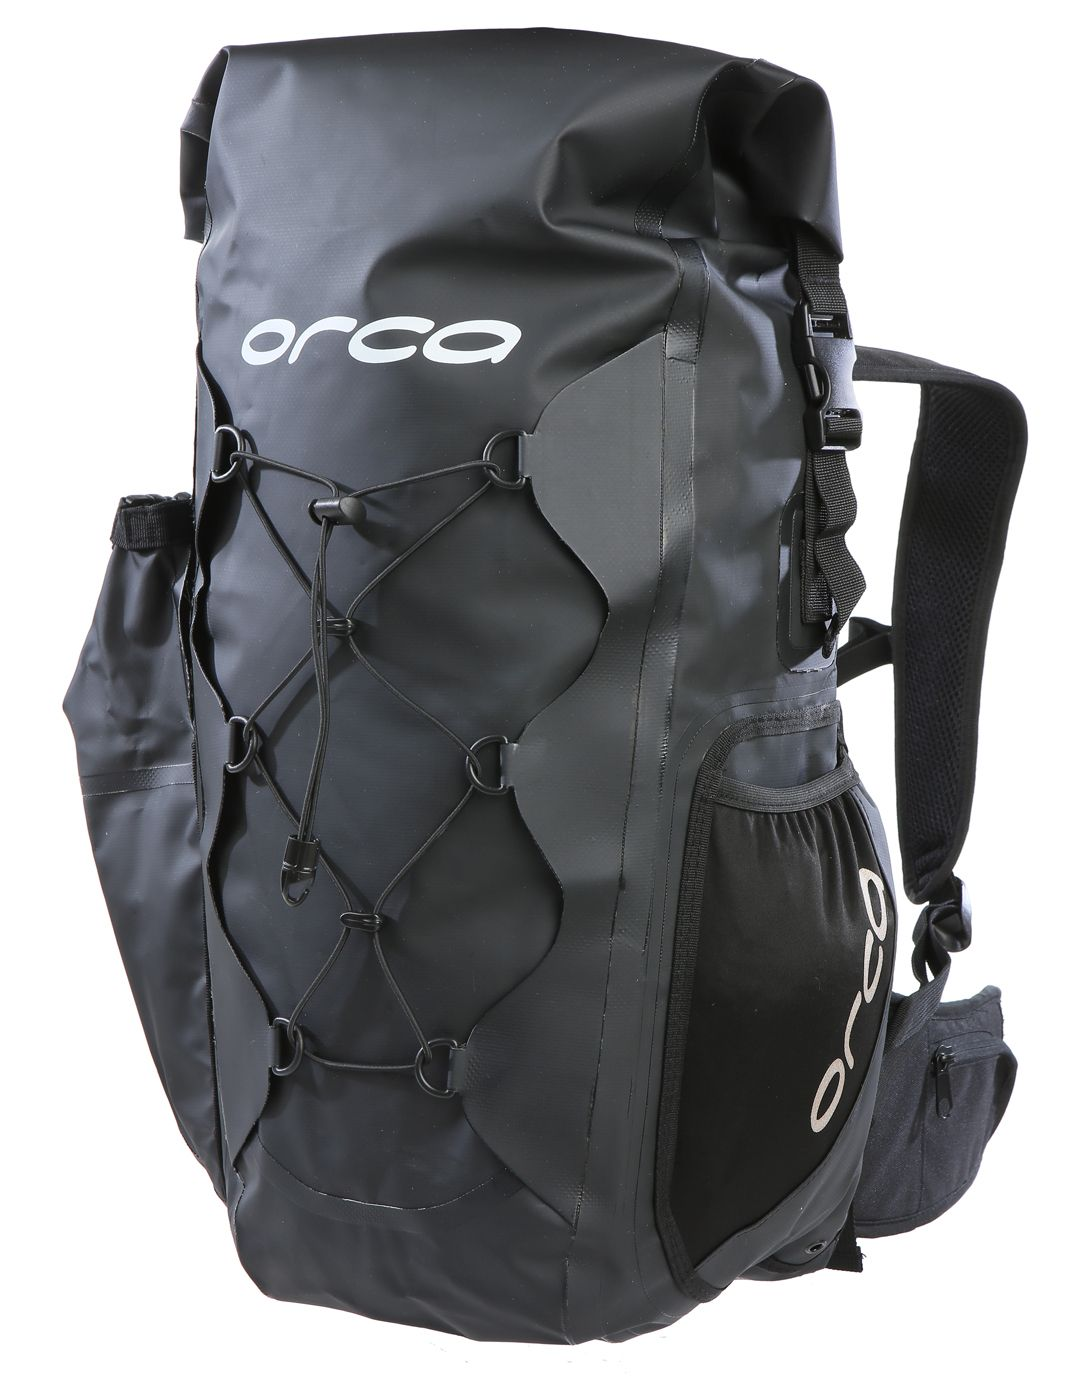 743c8d476297 Orca Waterproof Backpack